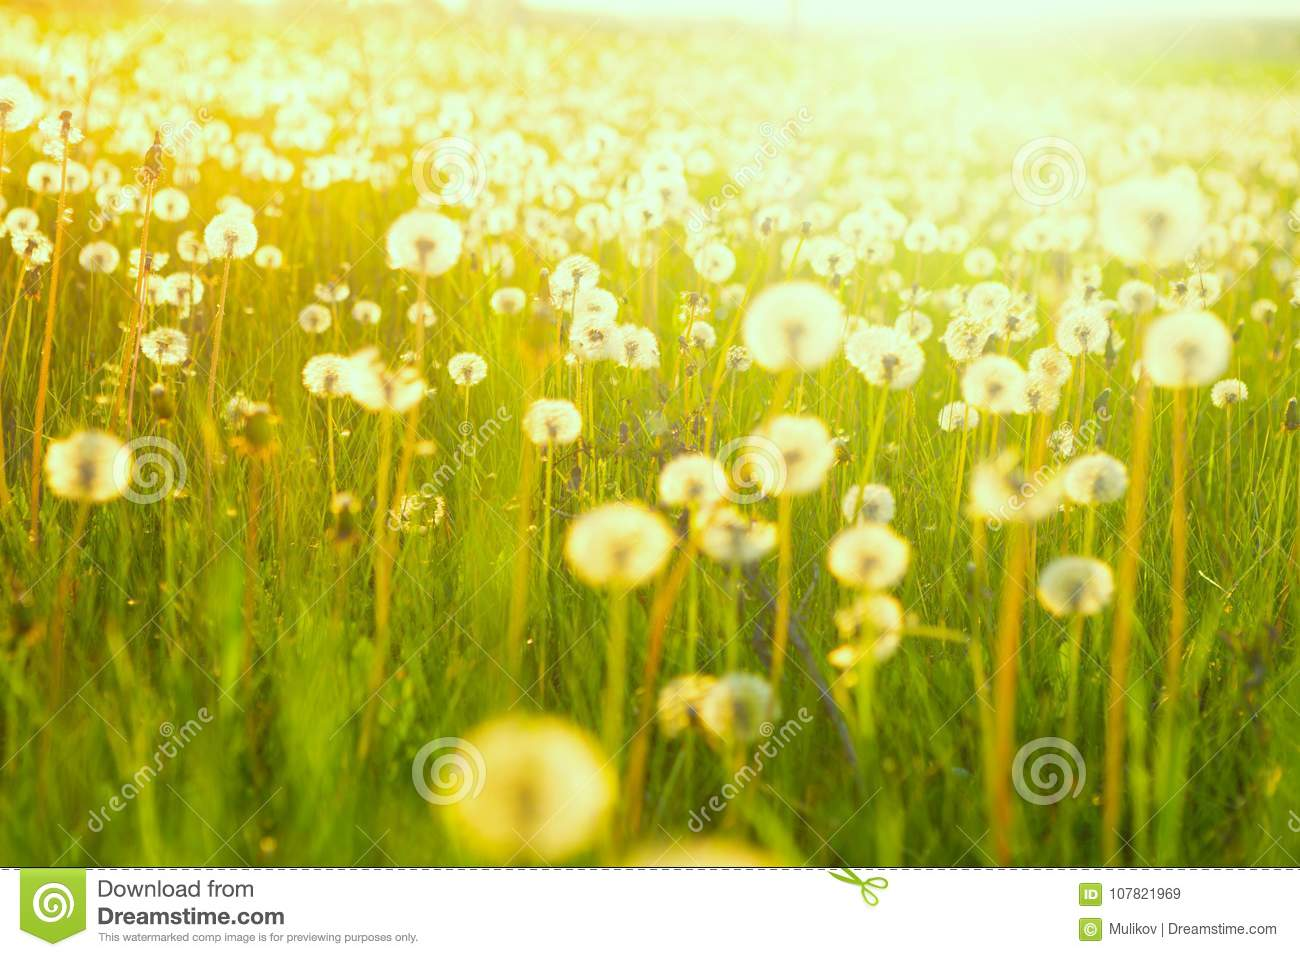 Download Field Of Dandelions. Green Summer Meadow With Dandelions At Sunset Stock Image - Image of outdoors, freedom: 107821969